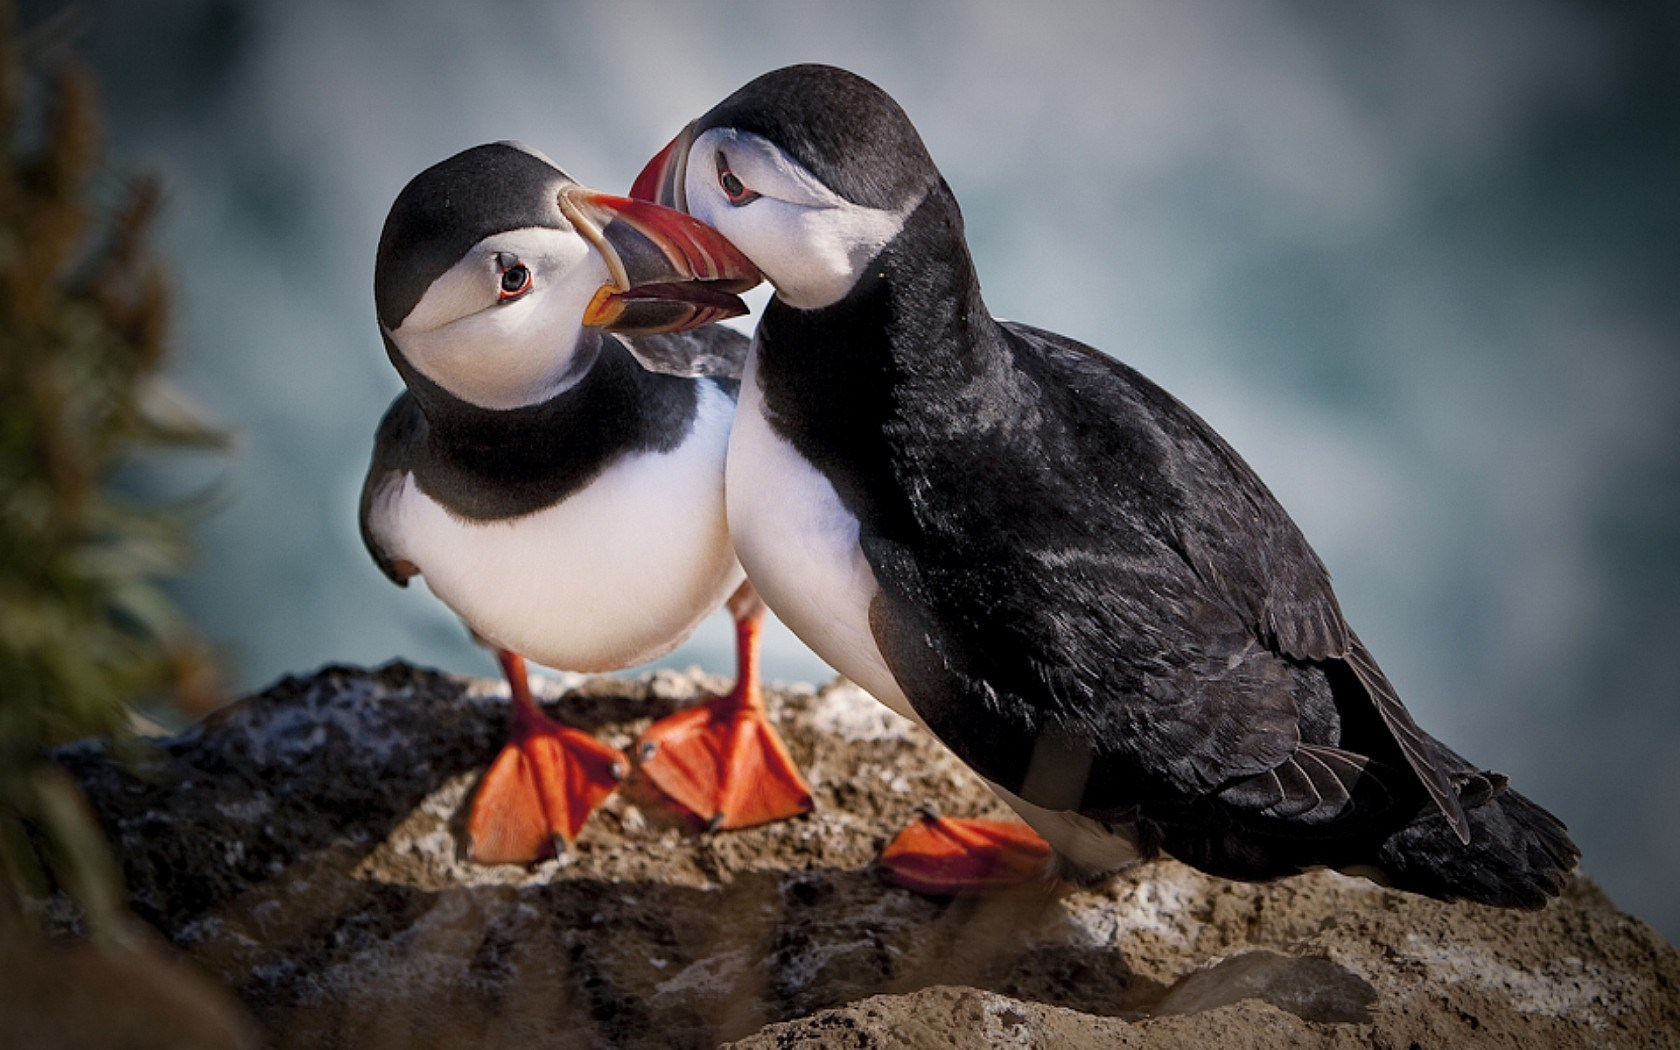 Cute Romantic Kissing Wallpaper Atlantic Puffin Love Hd Desktop Wallpapers 4k Hd